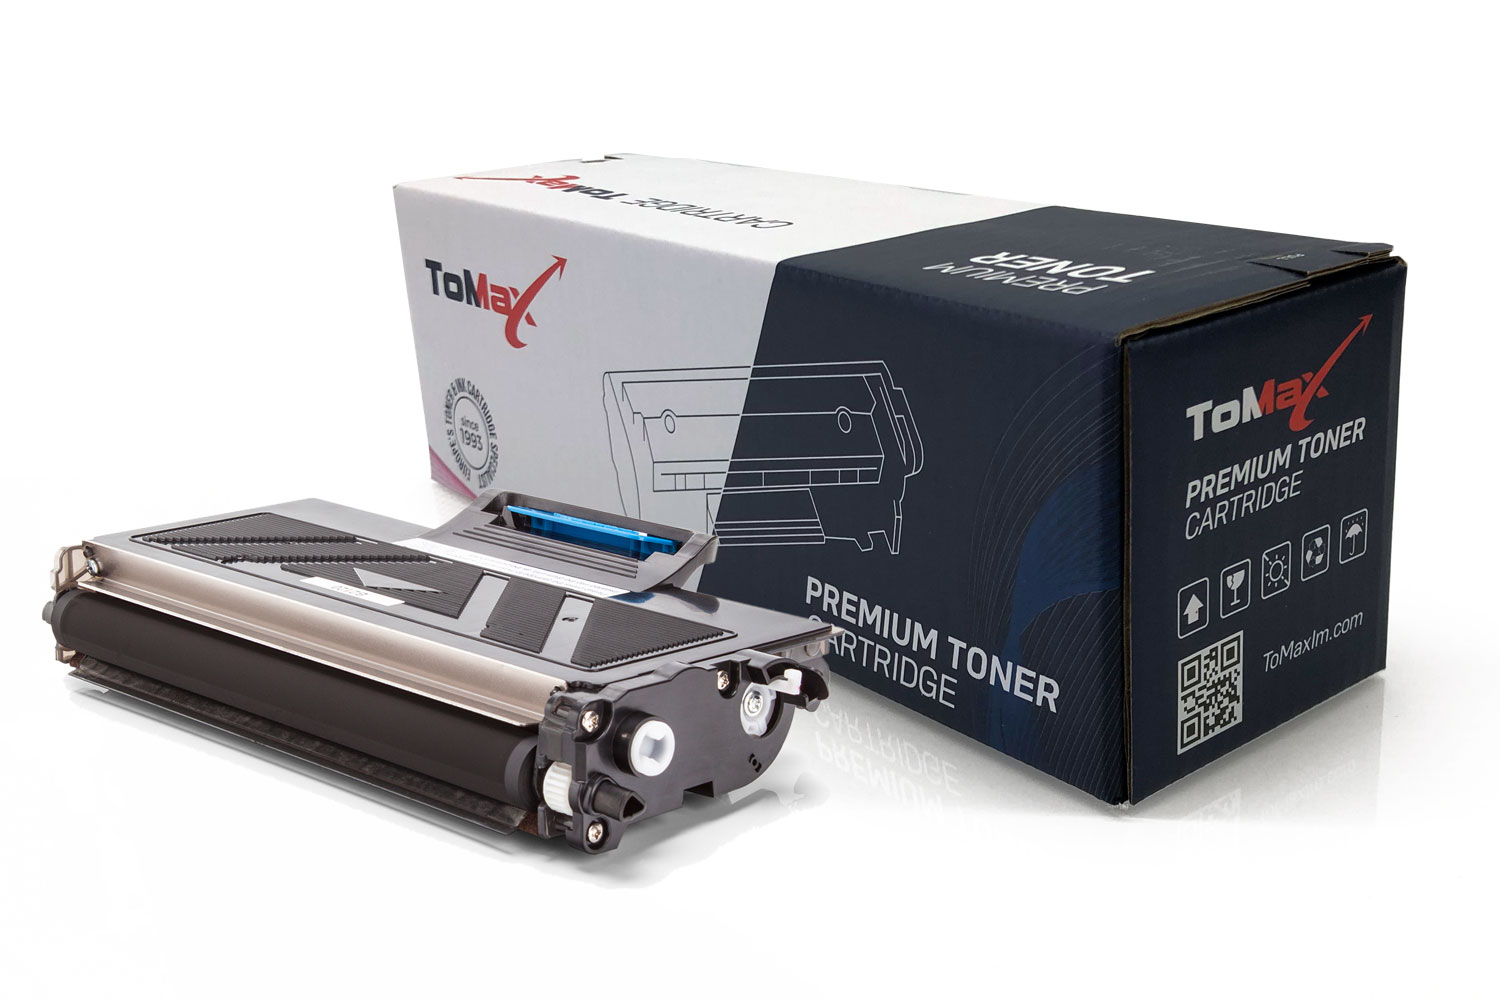 ToMax Premium Toner Cartridge replaces HP CE310A / 126A Black